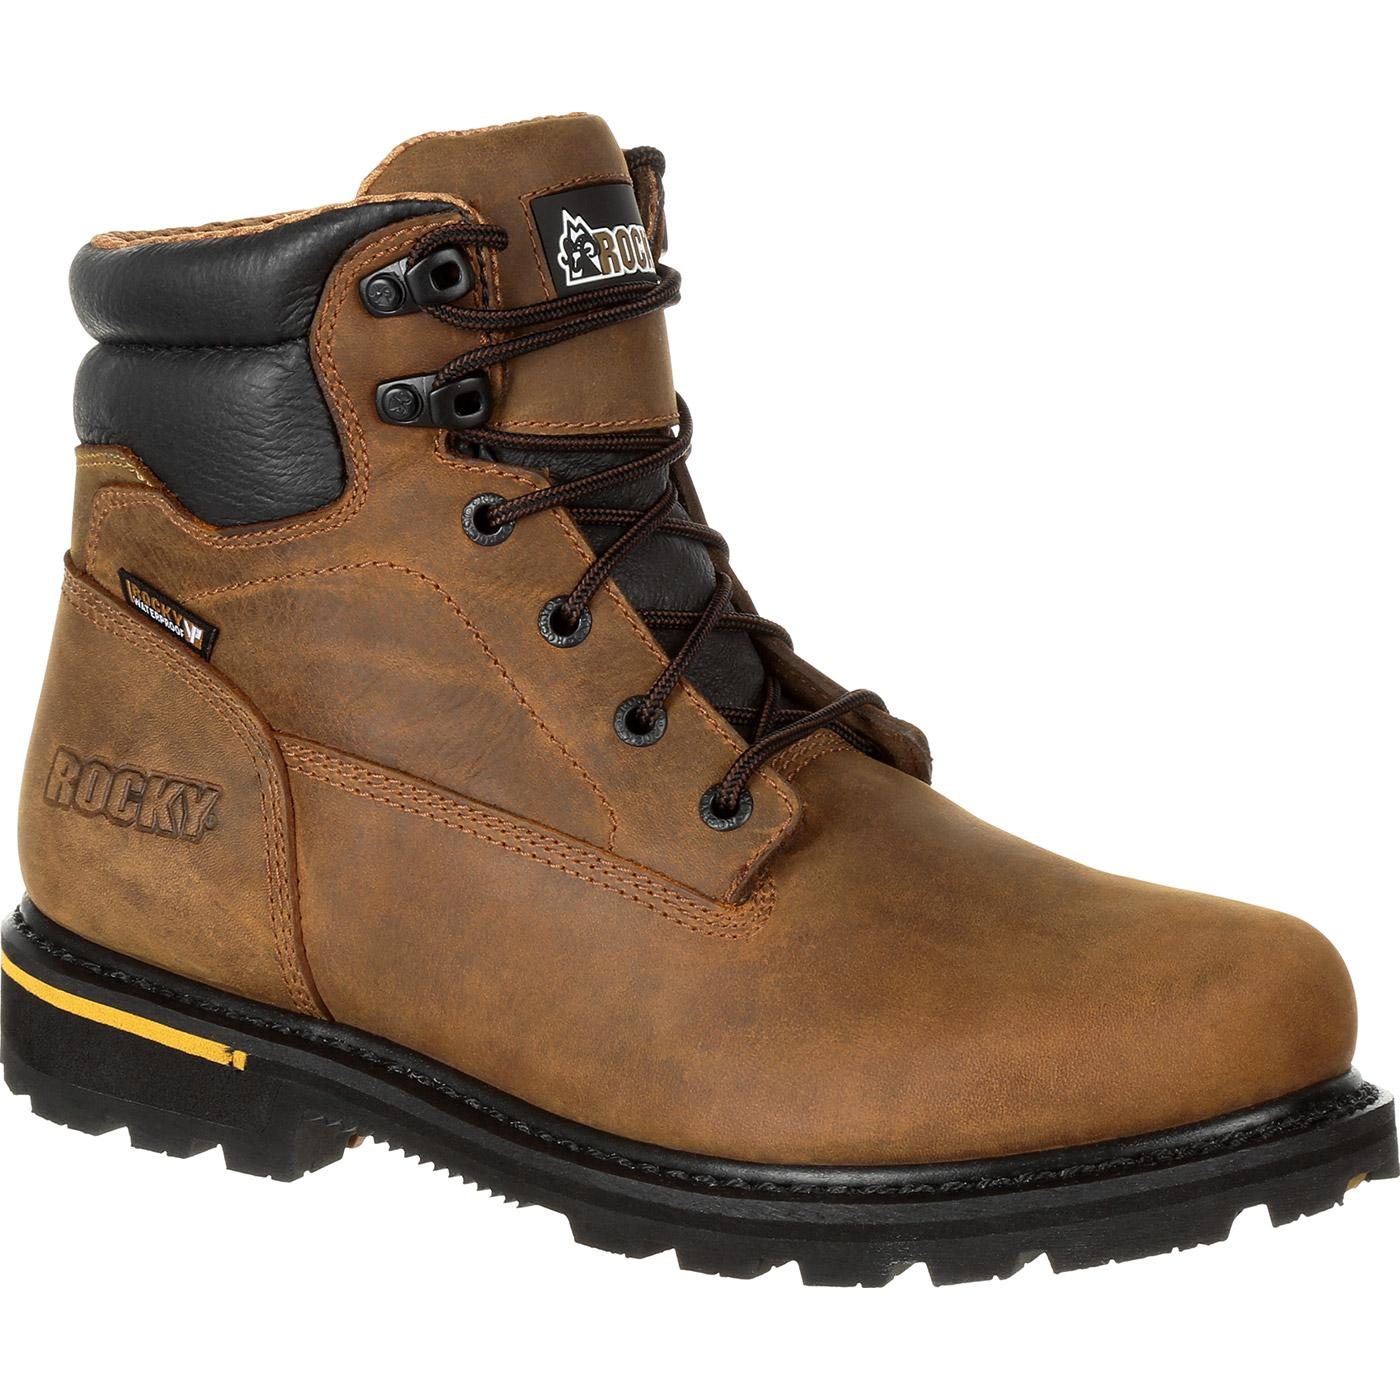 67c6efac25b Rocky Governor Composite Toe Waterproof 6 Inch Work Boot